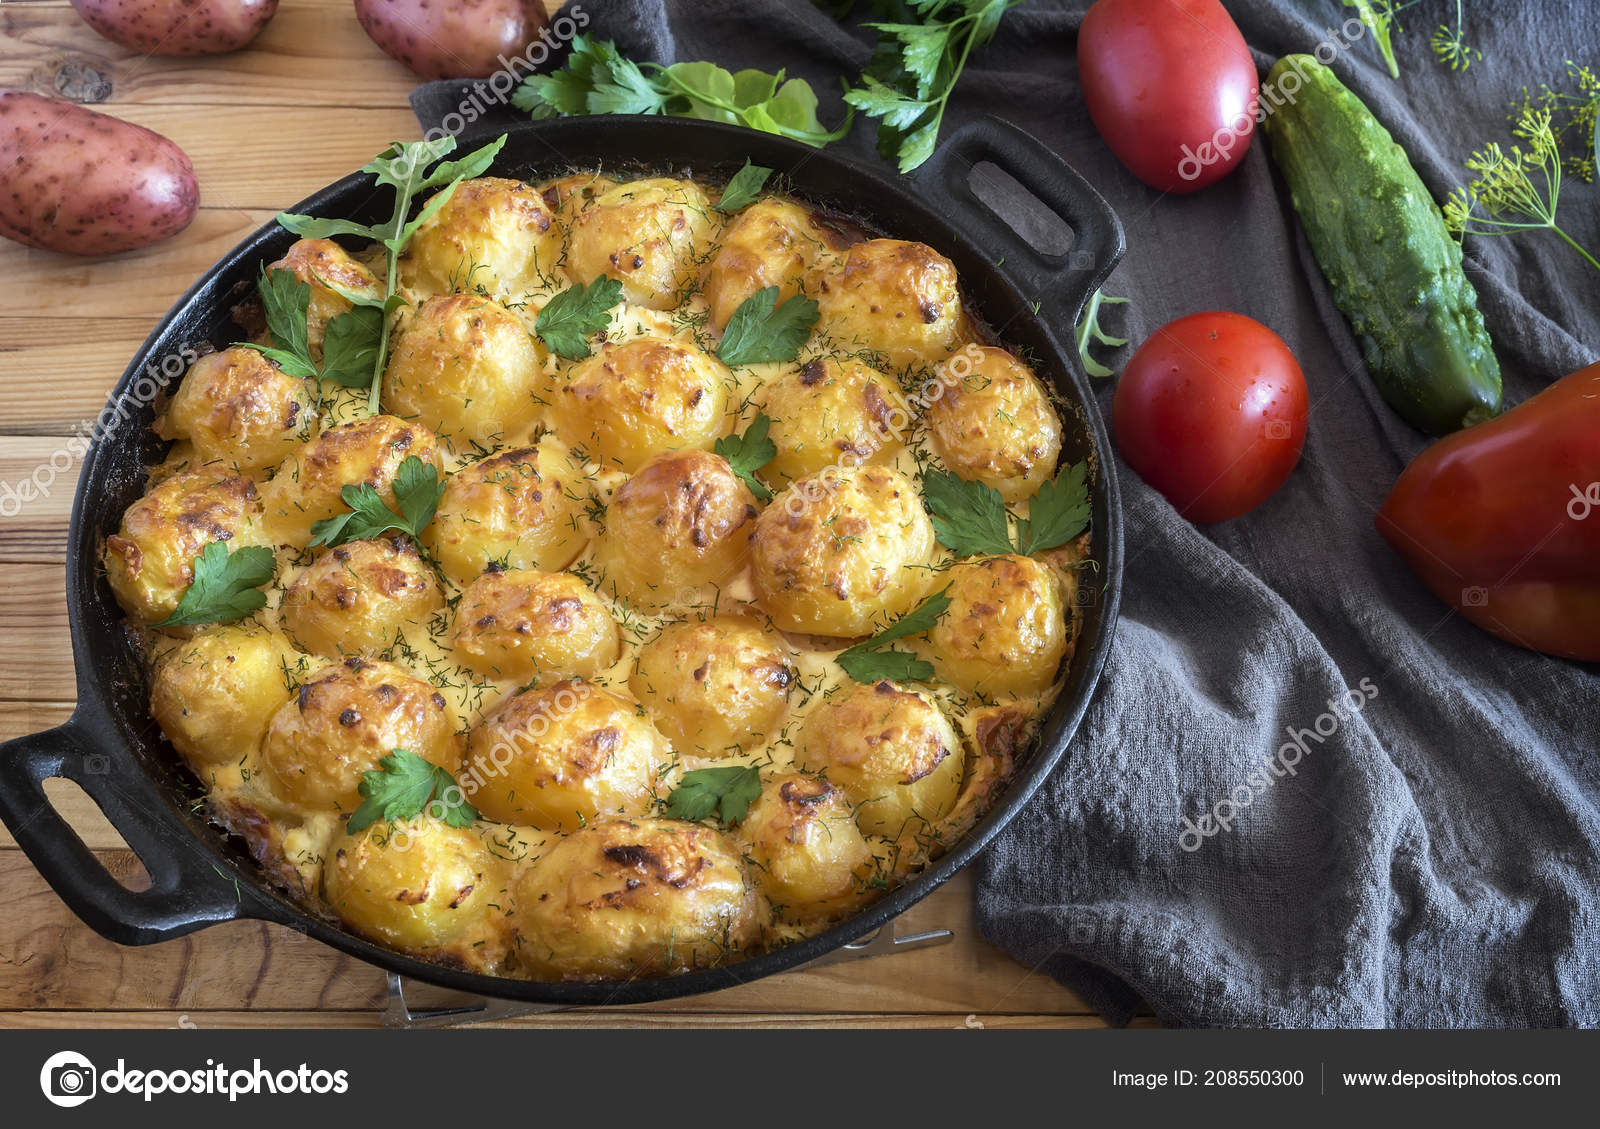 Astounding Young Potatoes With Cottage Cheese Are Baked In The Oven Download Free Architecture Designs Scobabritishbridgeorg